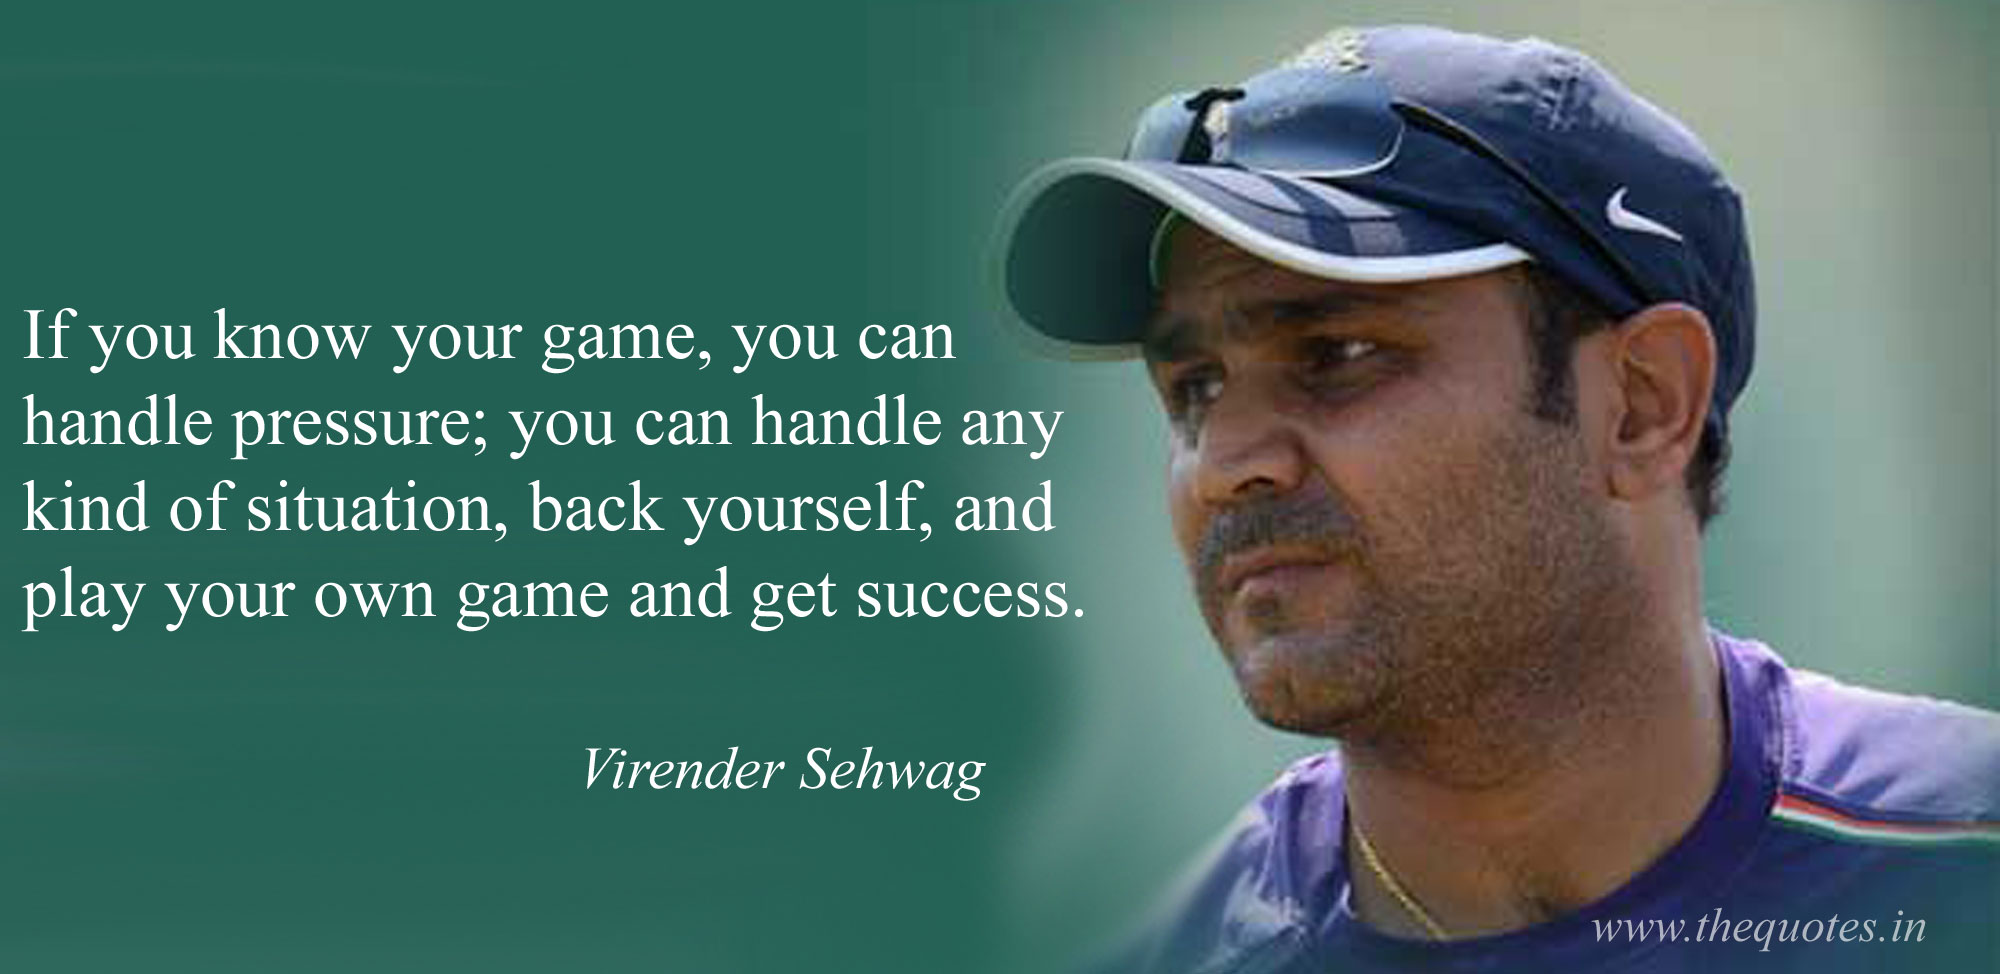 Virender-Sehwag-Quotes-3.jpg